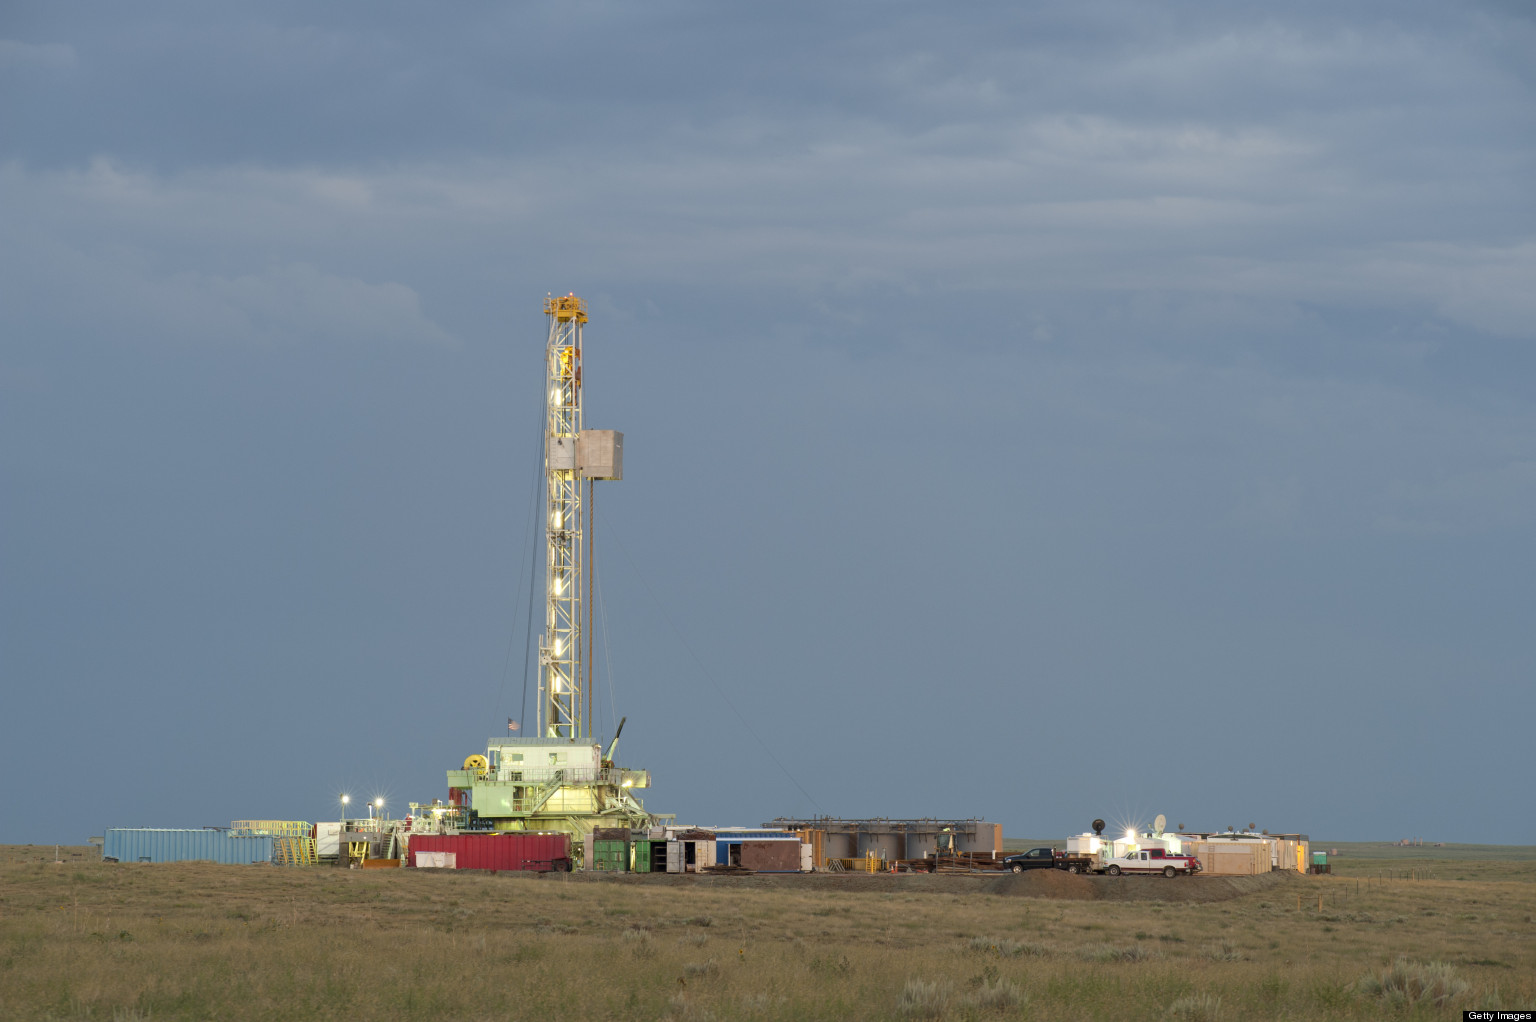 Governing Fracking Or Fracking Government? Watchdogs Question Conflicts Of Interest